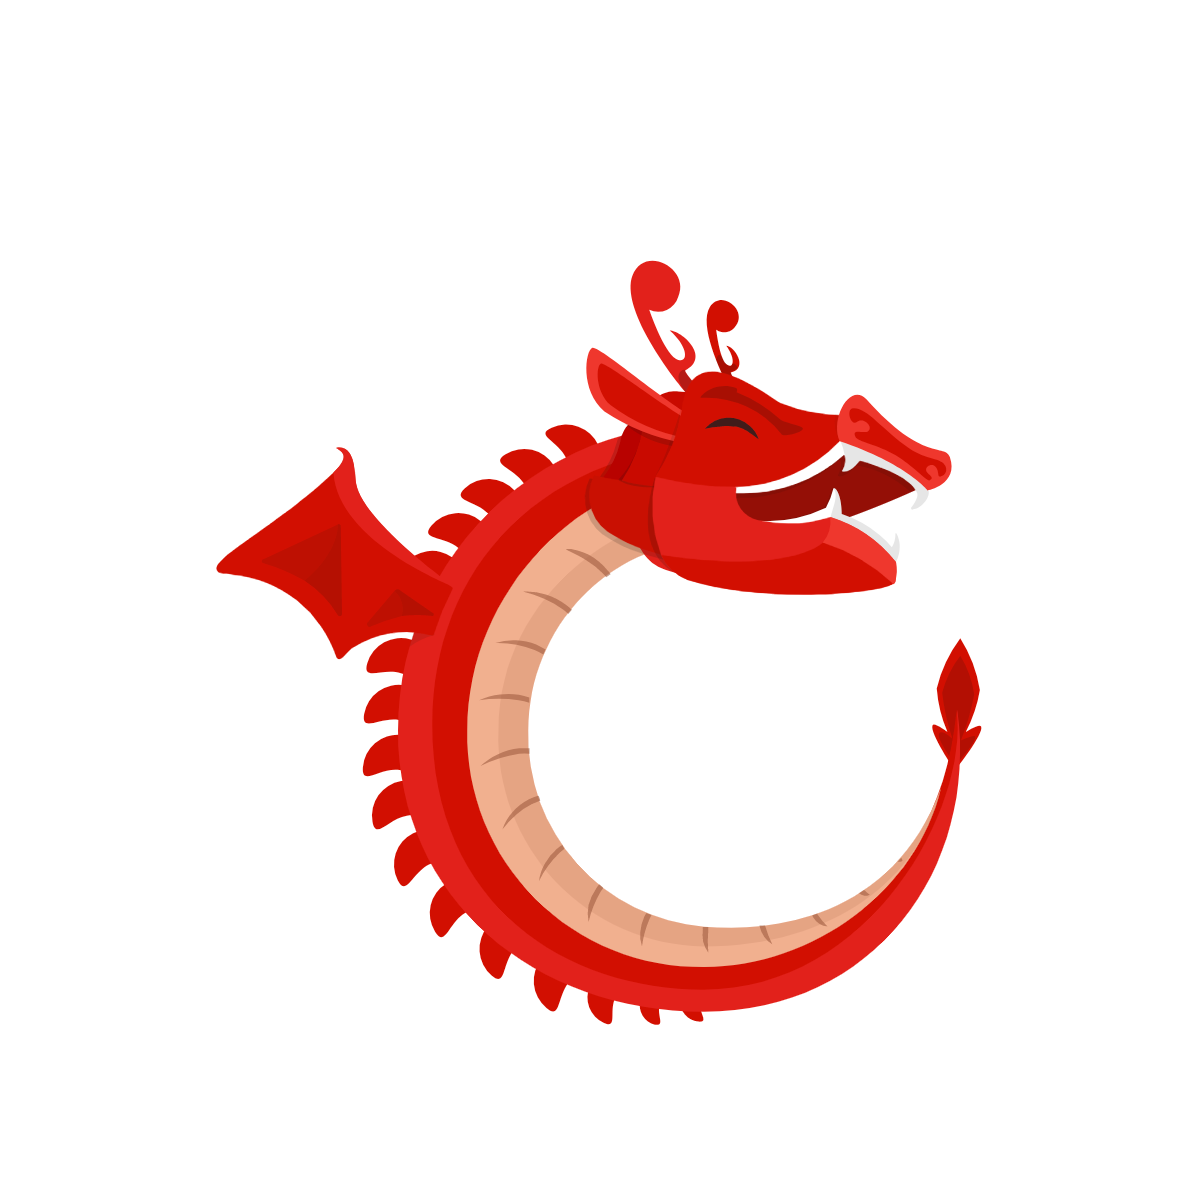 Tanaguru logo is a smilling red dragon